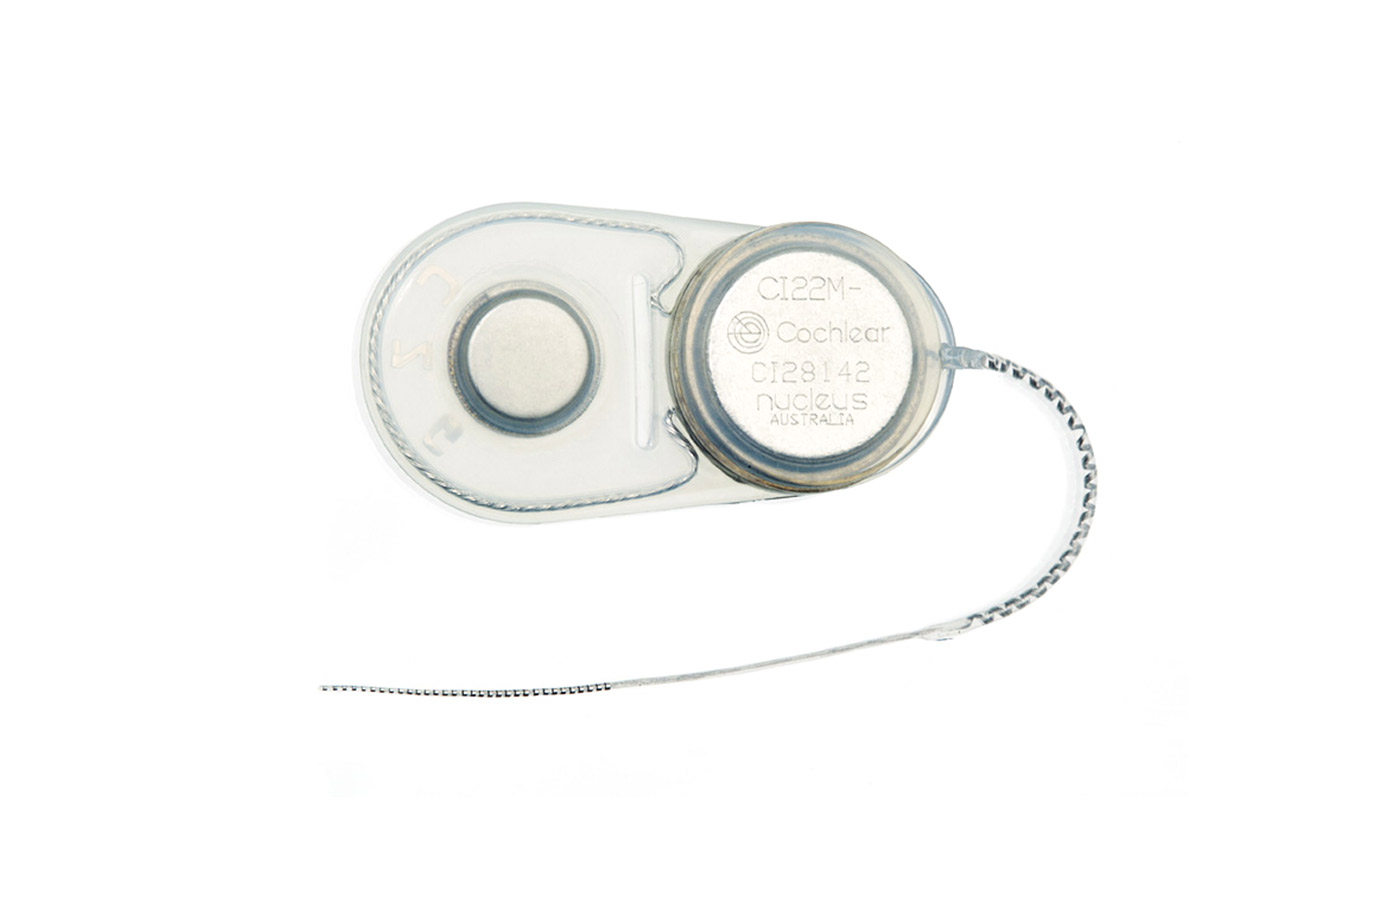 A Cochlear implant